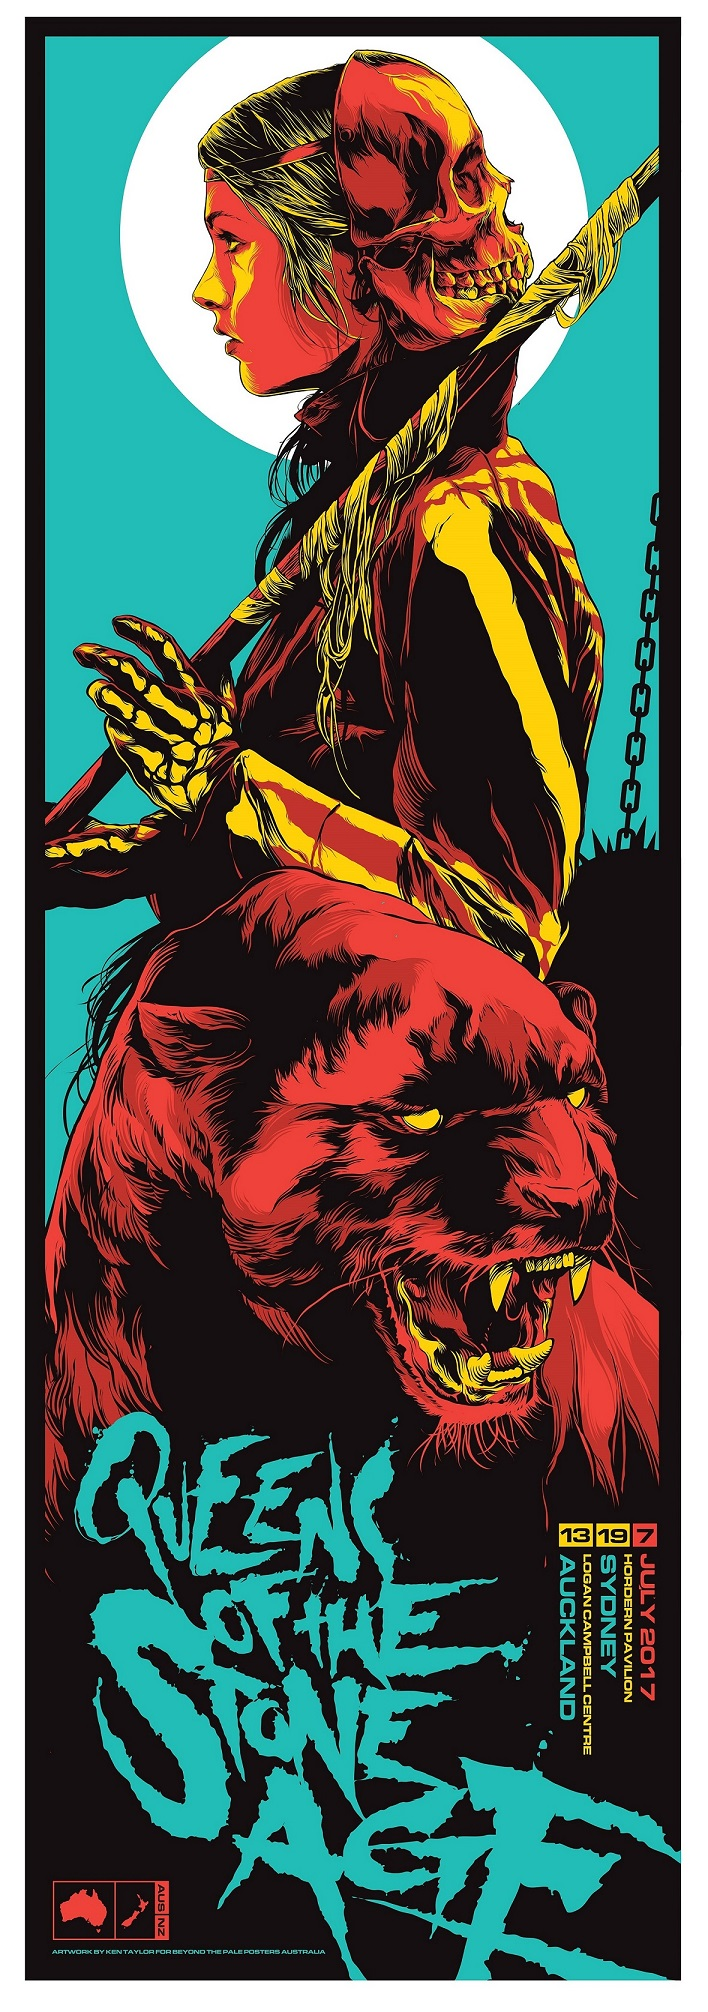 queens of the stone age oz nz tour 2017 by ken taylor 12 x 36 6 color screenprint ed of 295 s n 65 red